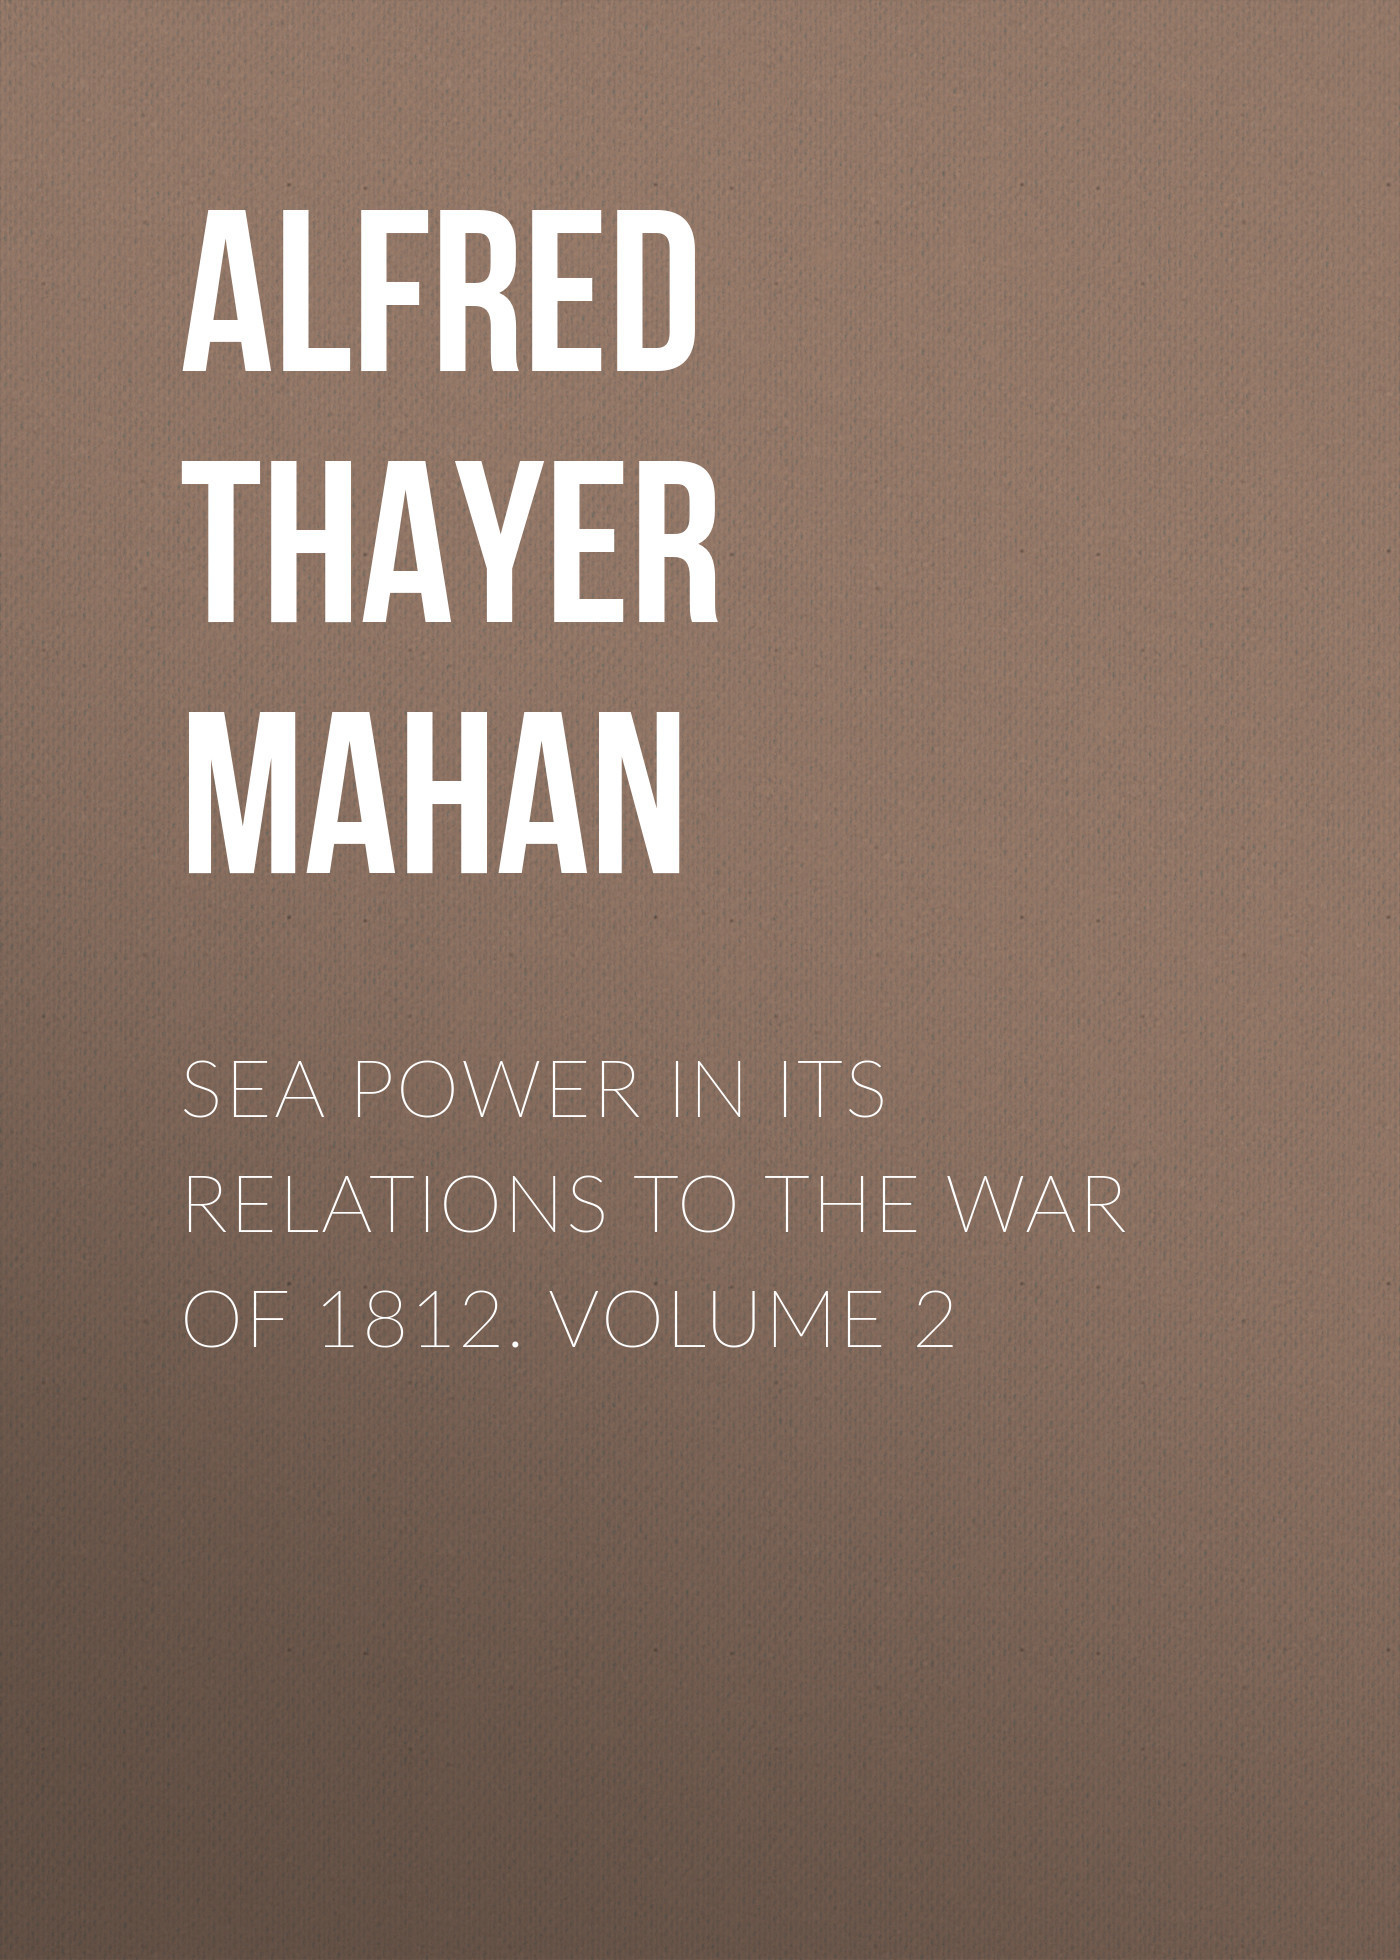 Alfred Thayer Mahan Sea Power in its Relations to the War of 1812. Volume 2 1pcs serial ata sata 4 pin ide to 2 of 15 hdd power adapter cable hot worldwide